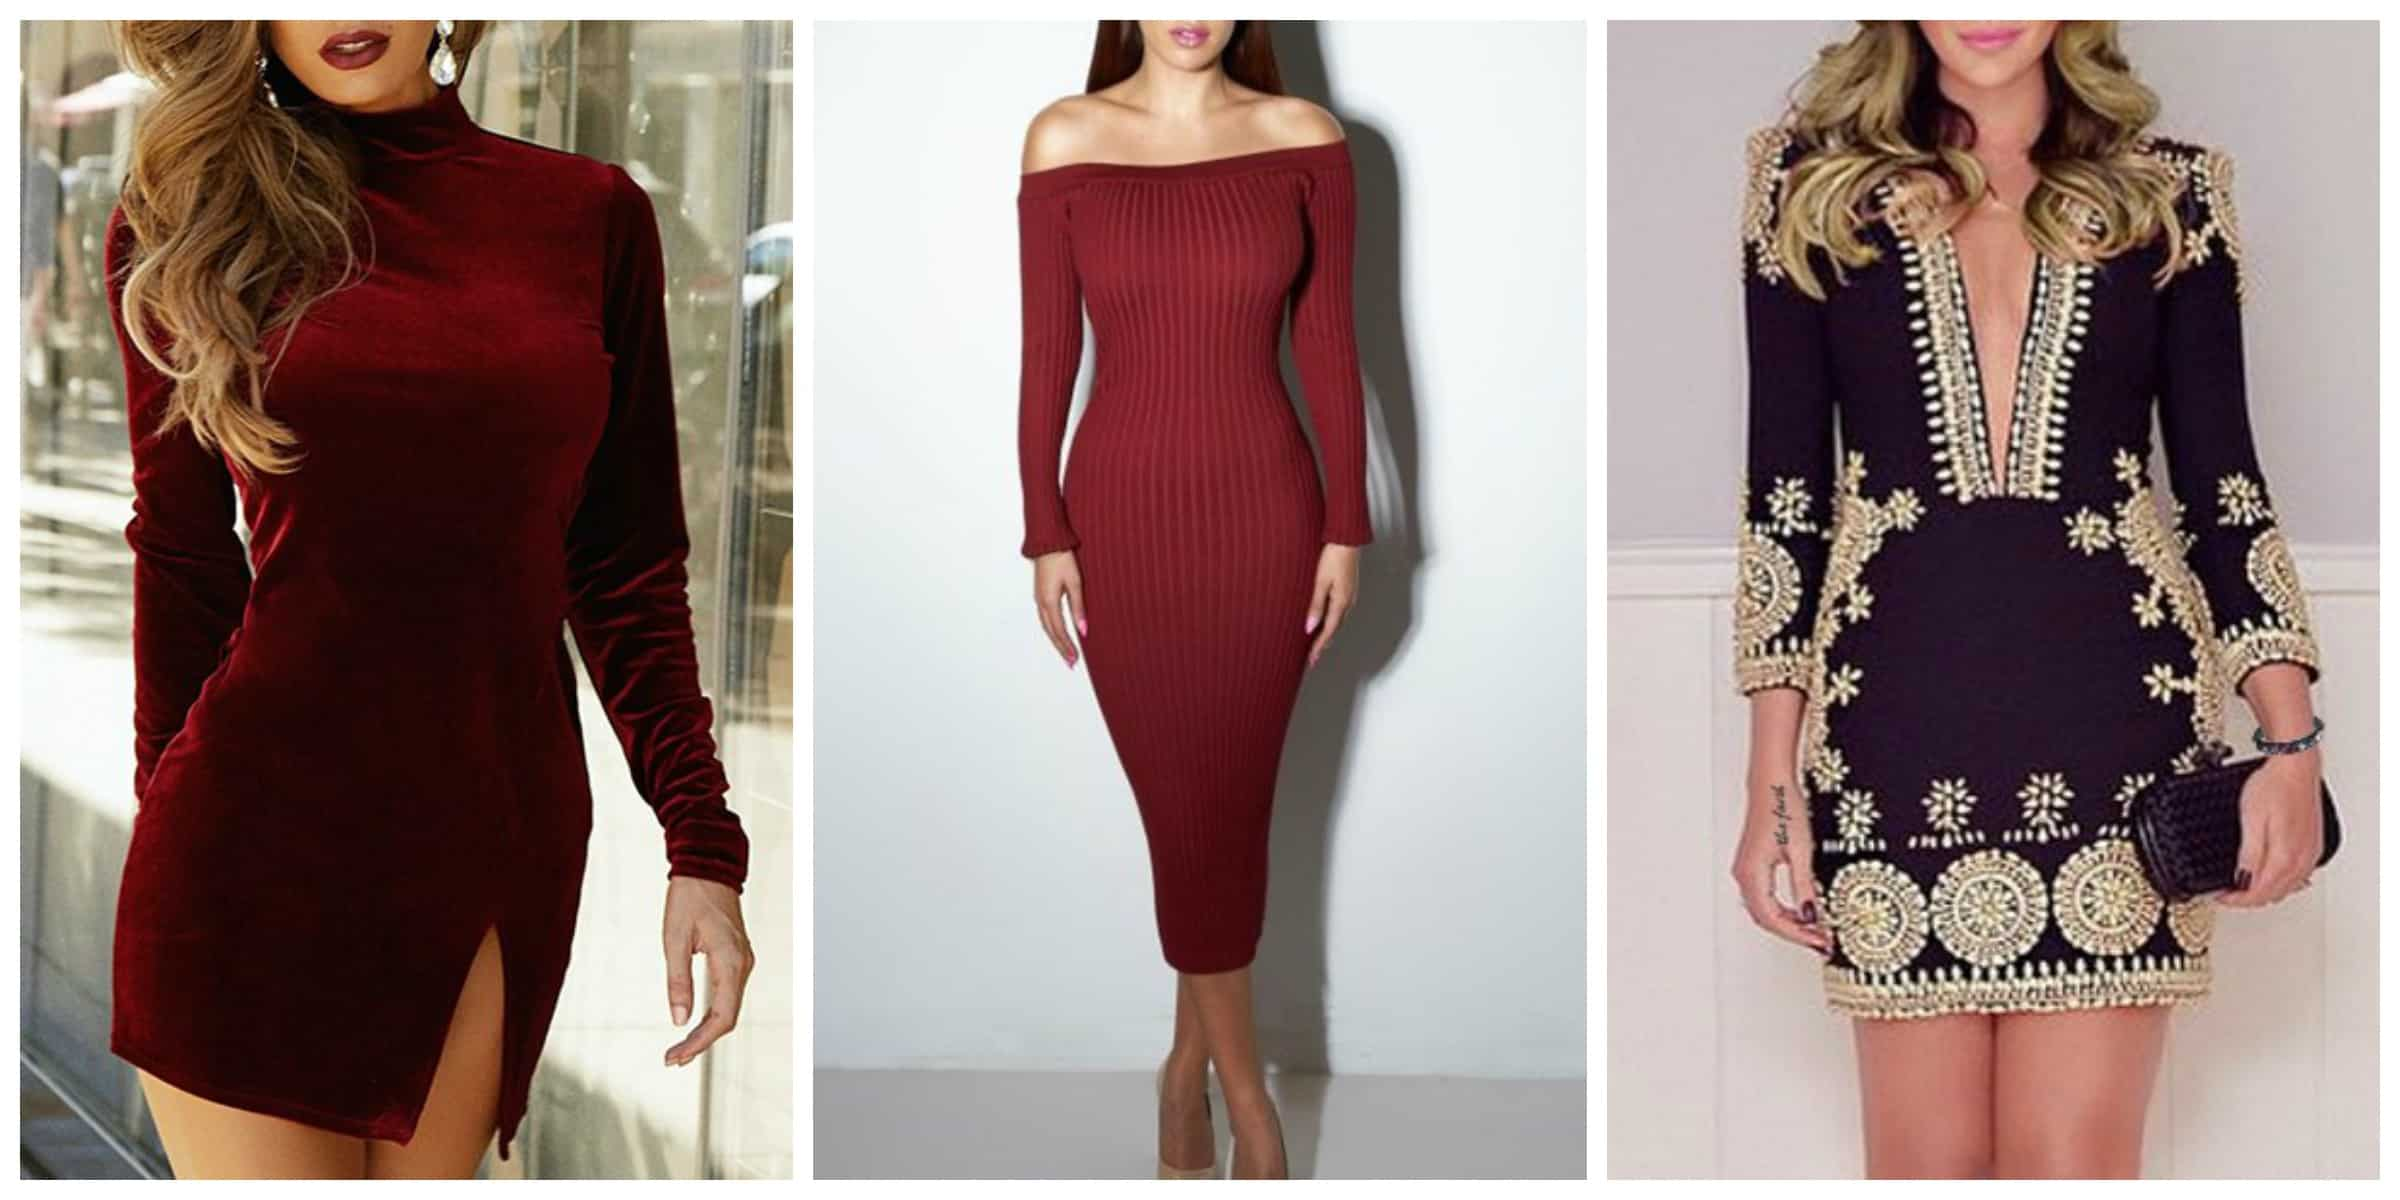 sexy-dresses-valentines-day – The Fashion Tag Blog